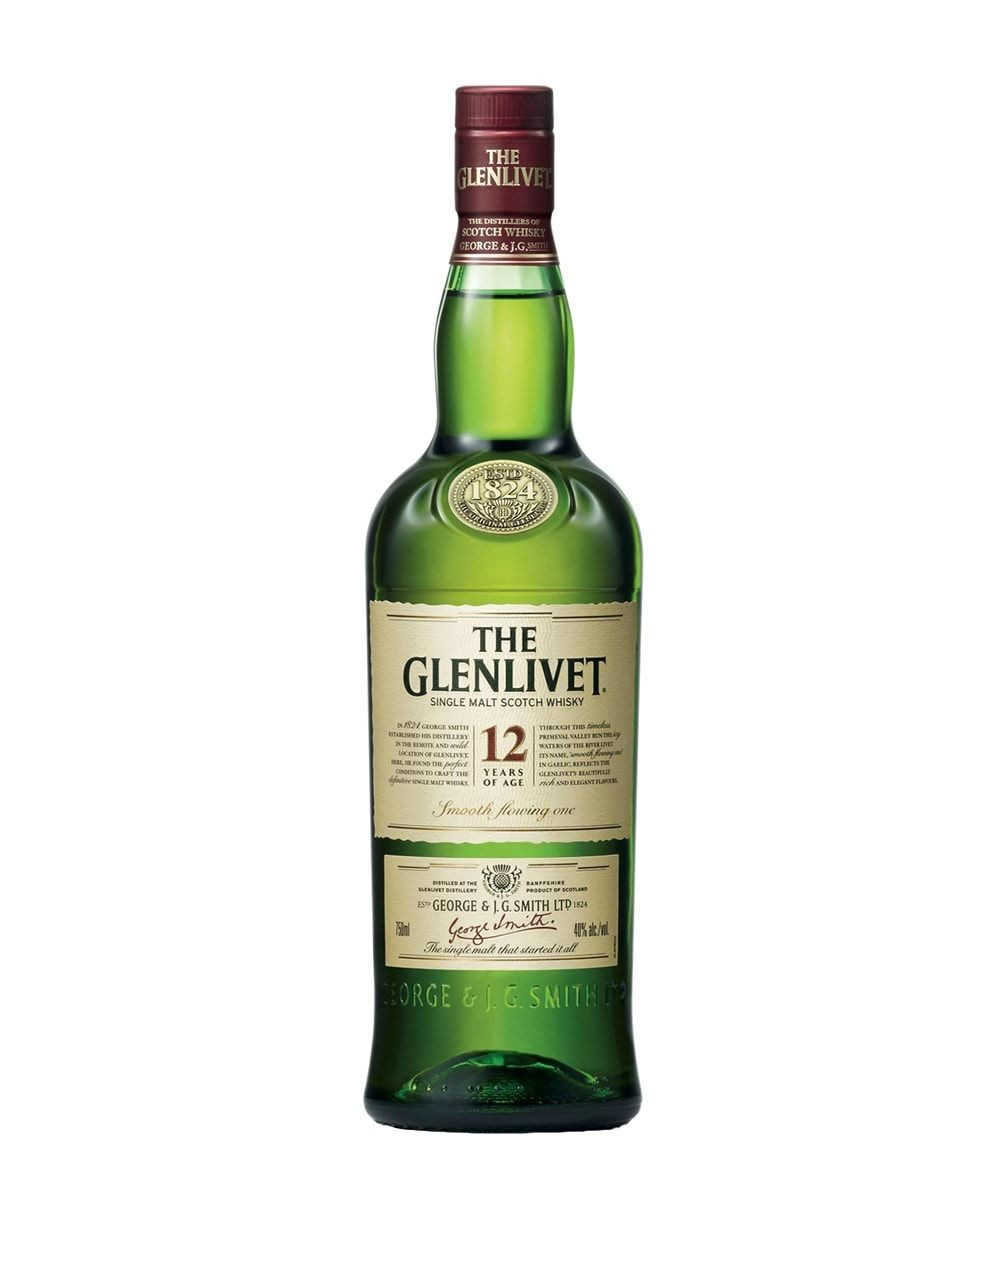 the glenlivet 12 year old scotch whisky buy online or send as a